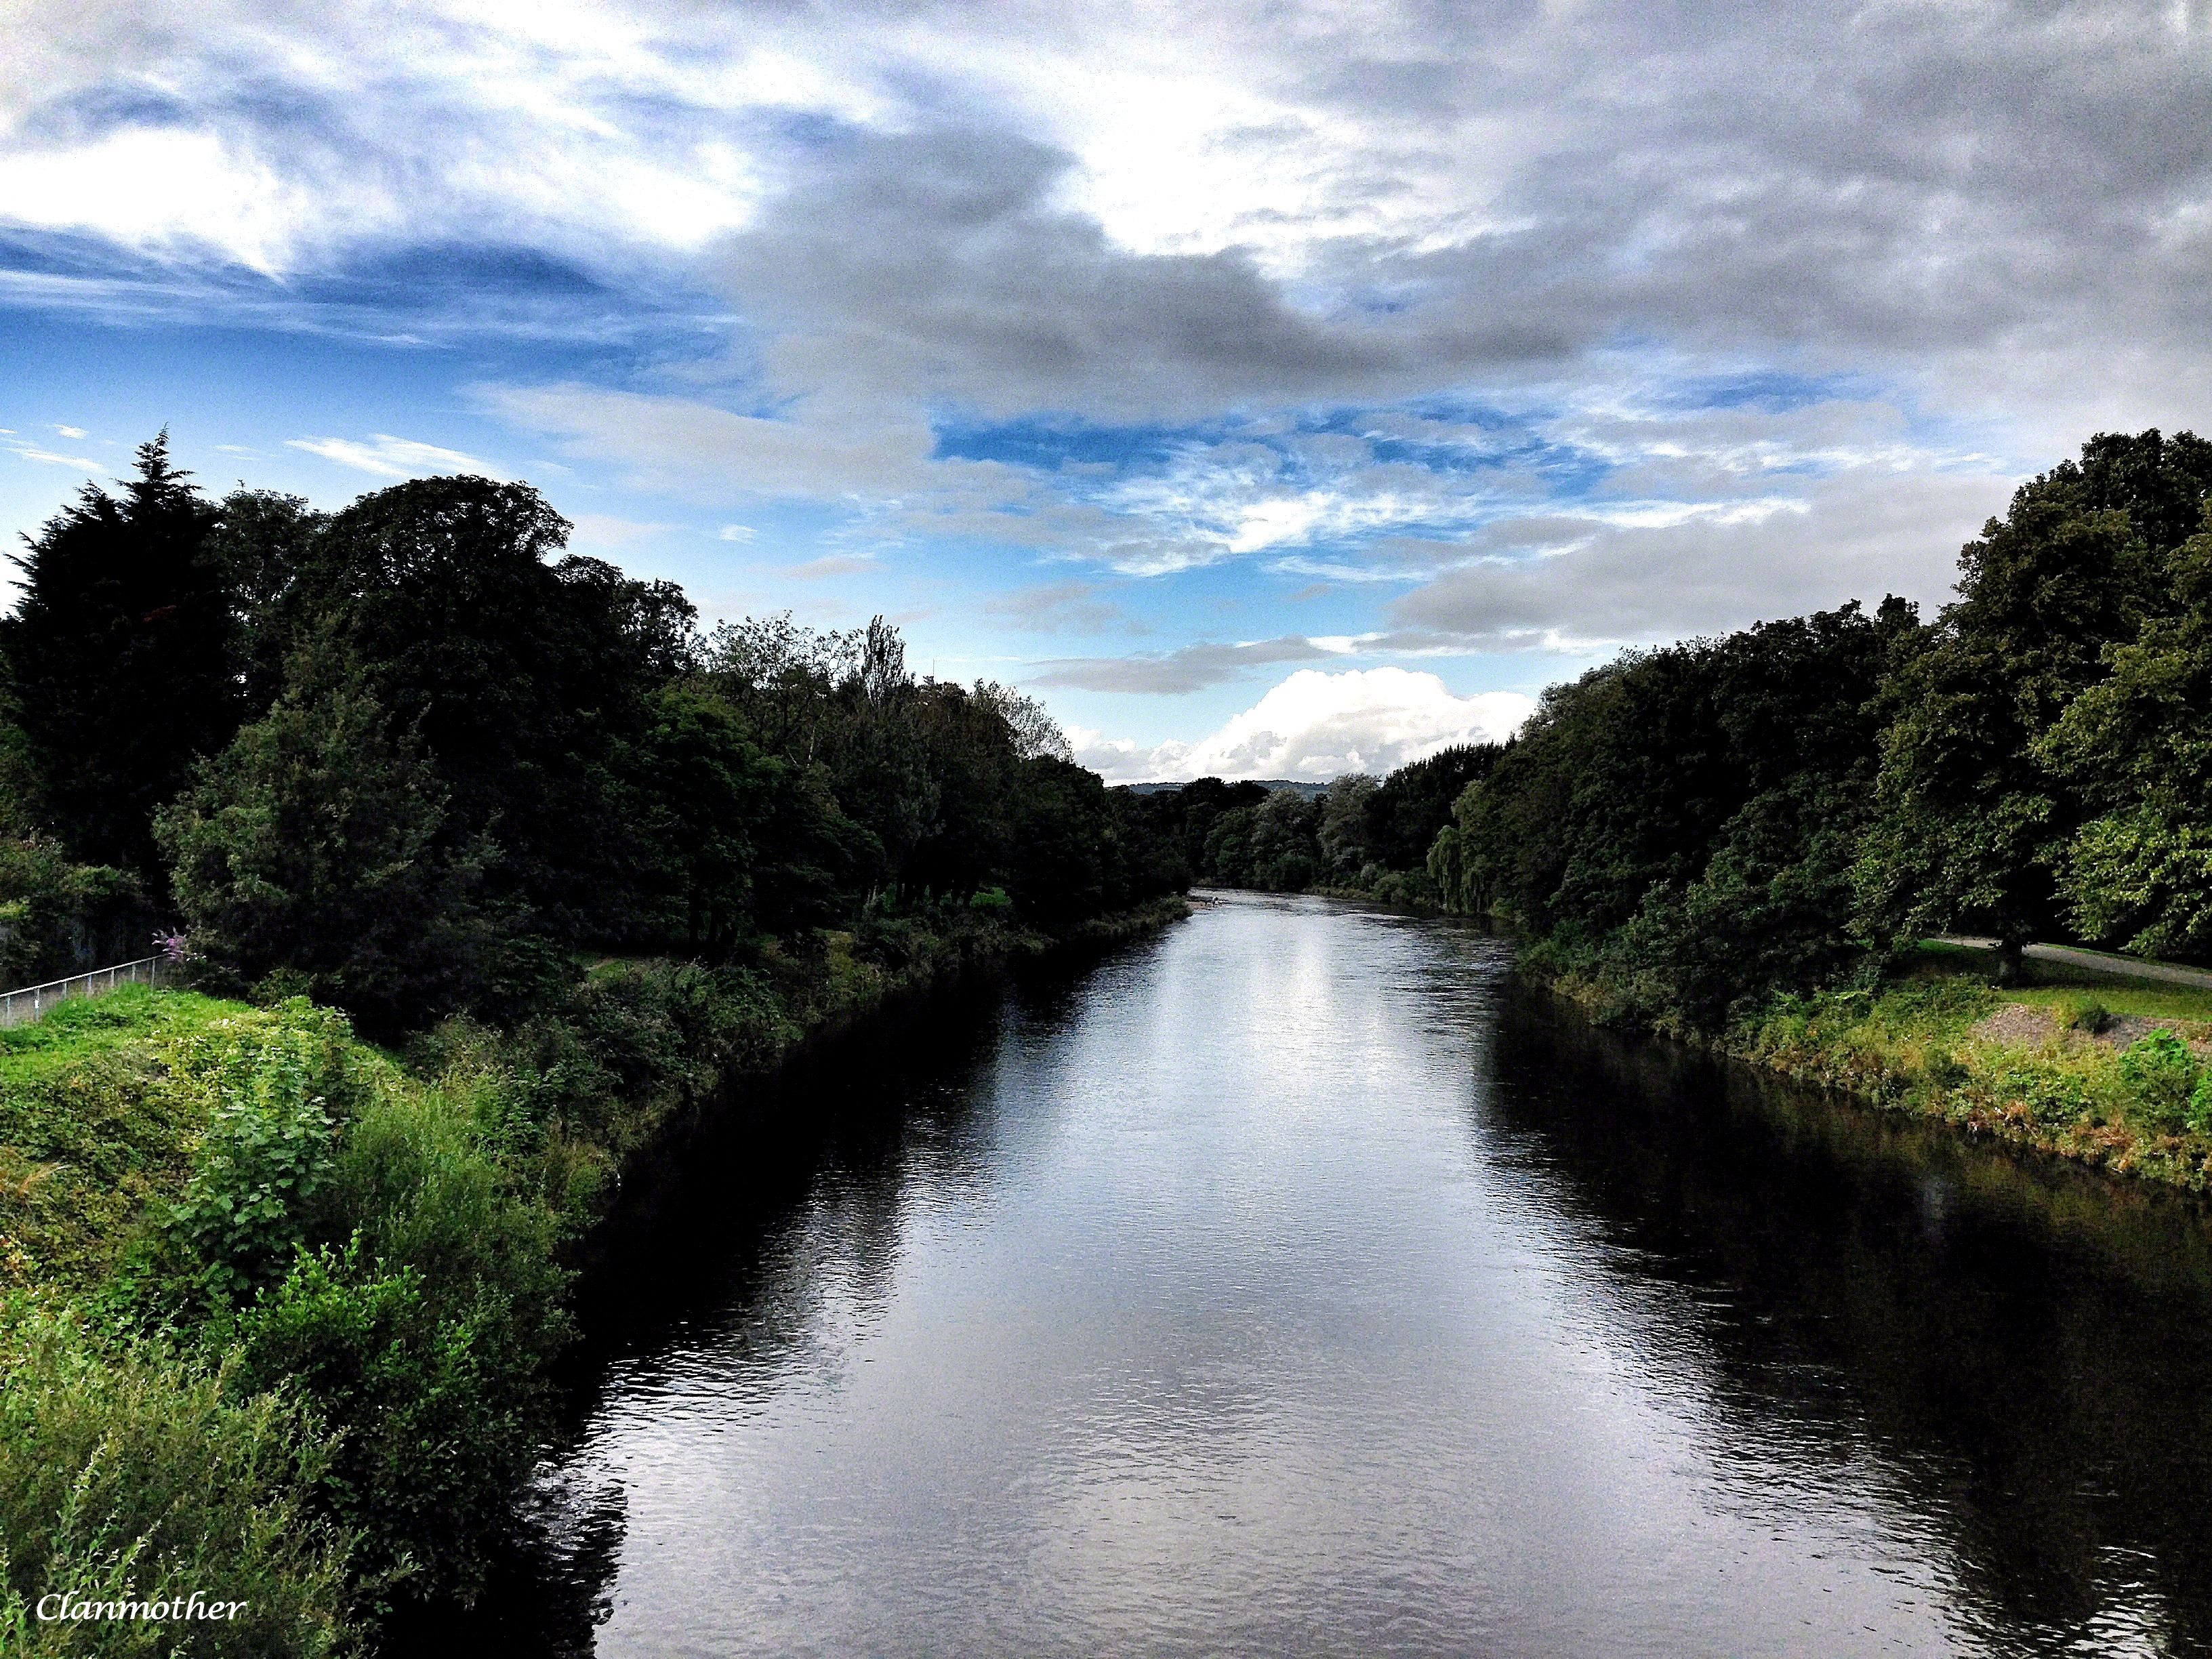 Rome amp; The River Taff